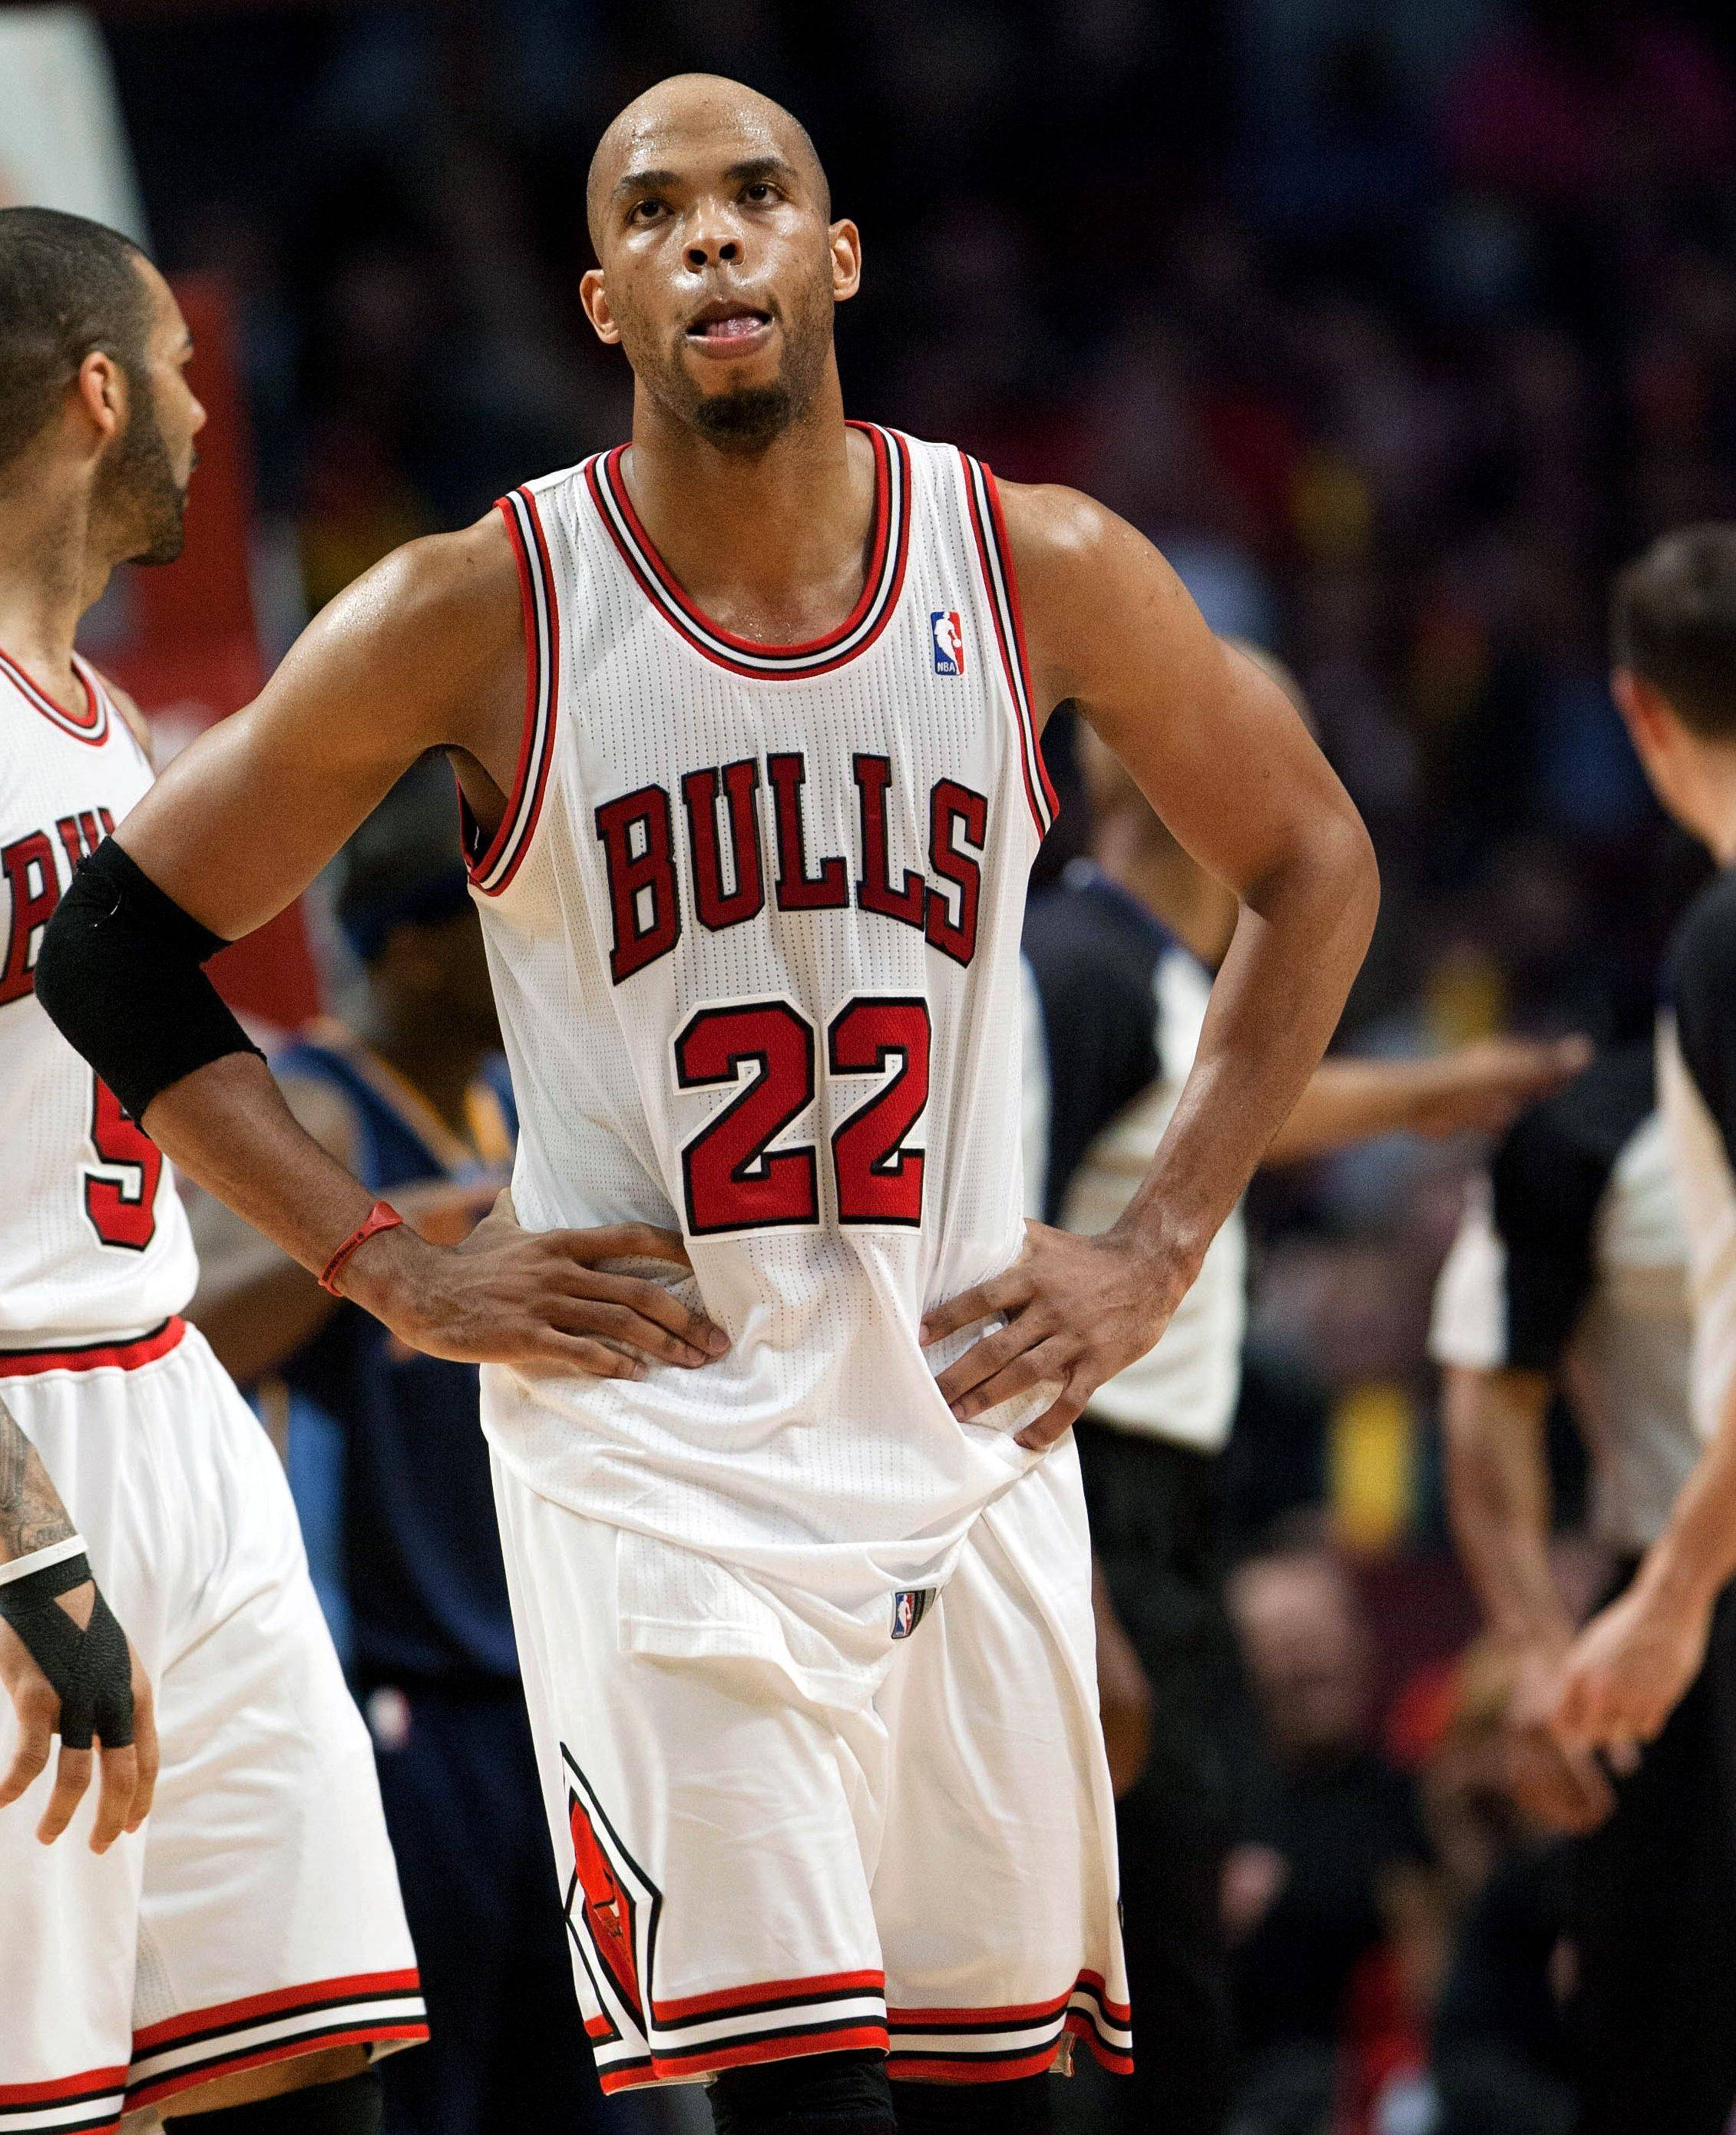 Taj Gibson doesn't like what he sees on the scoreboard as he looks up late in the game Monday night at the United Center.